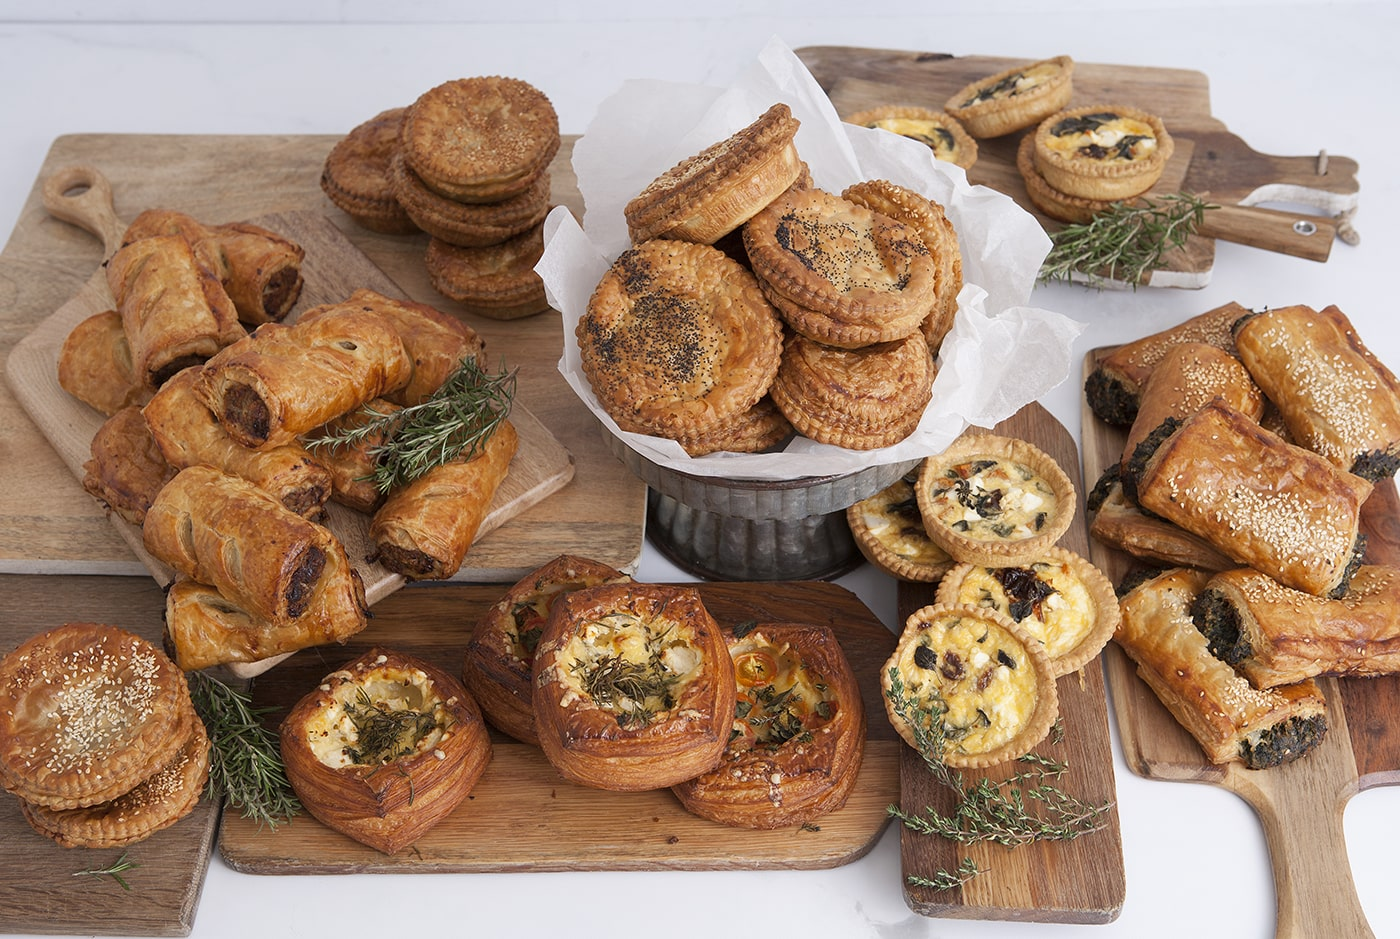 Buttery, puff pastry is the basis of all of our savoury pastries including organic pork sausage rolls, pies, quiches, spinach and ricotta rolls and savoury danish